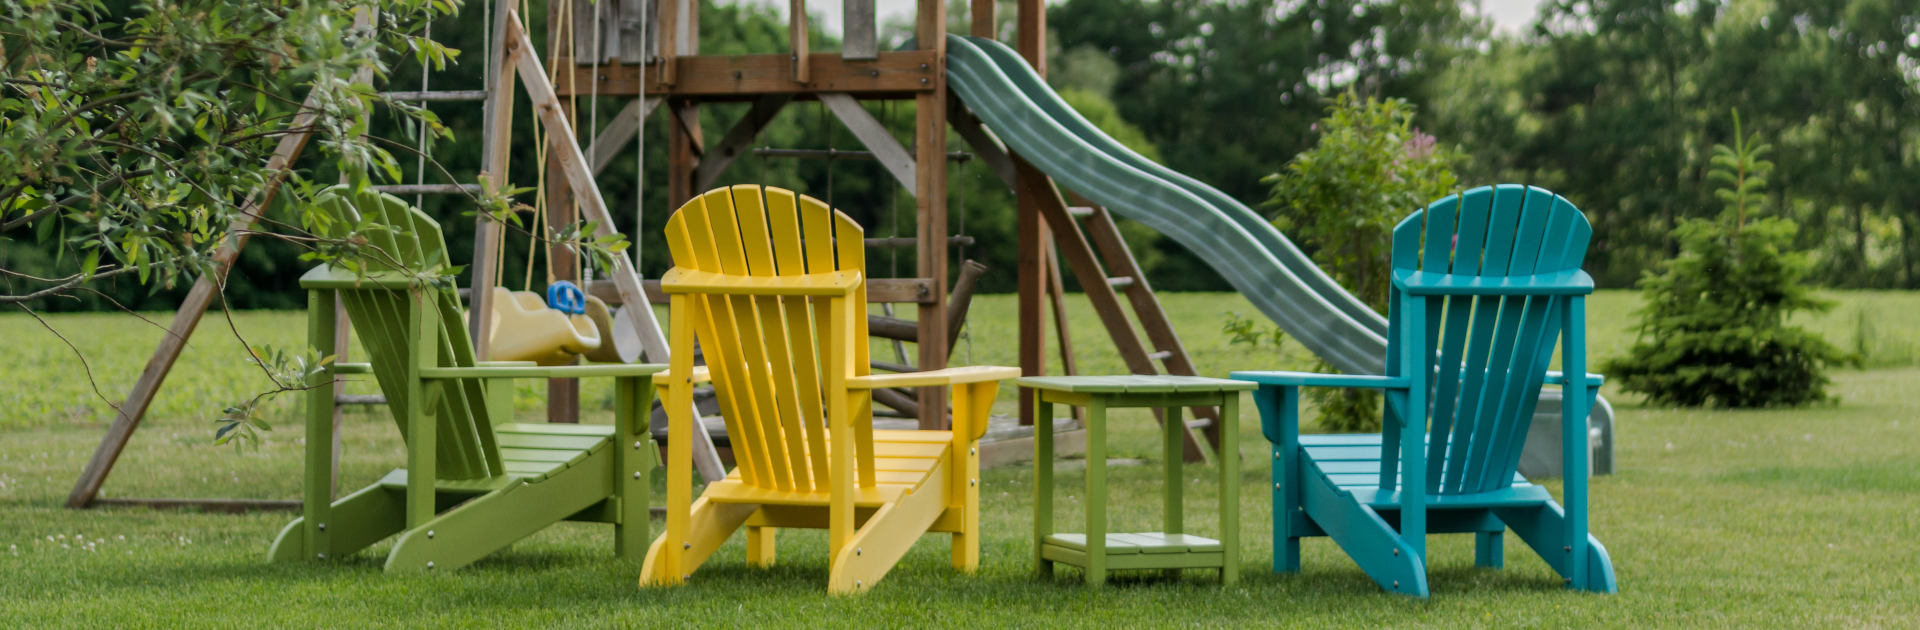 adirondack chairs and swingset